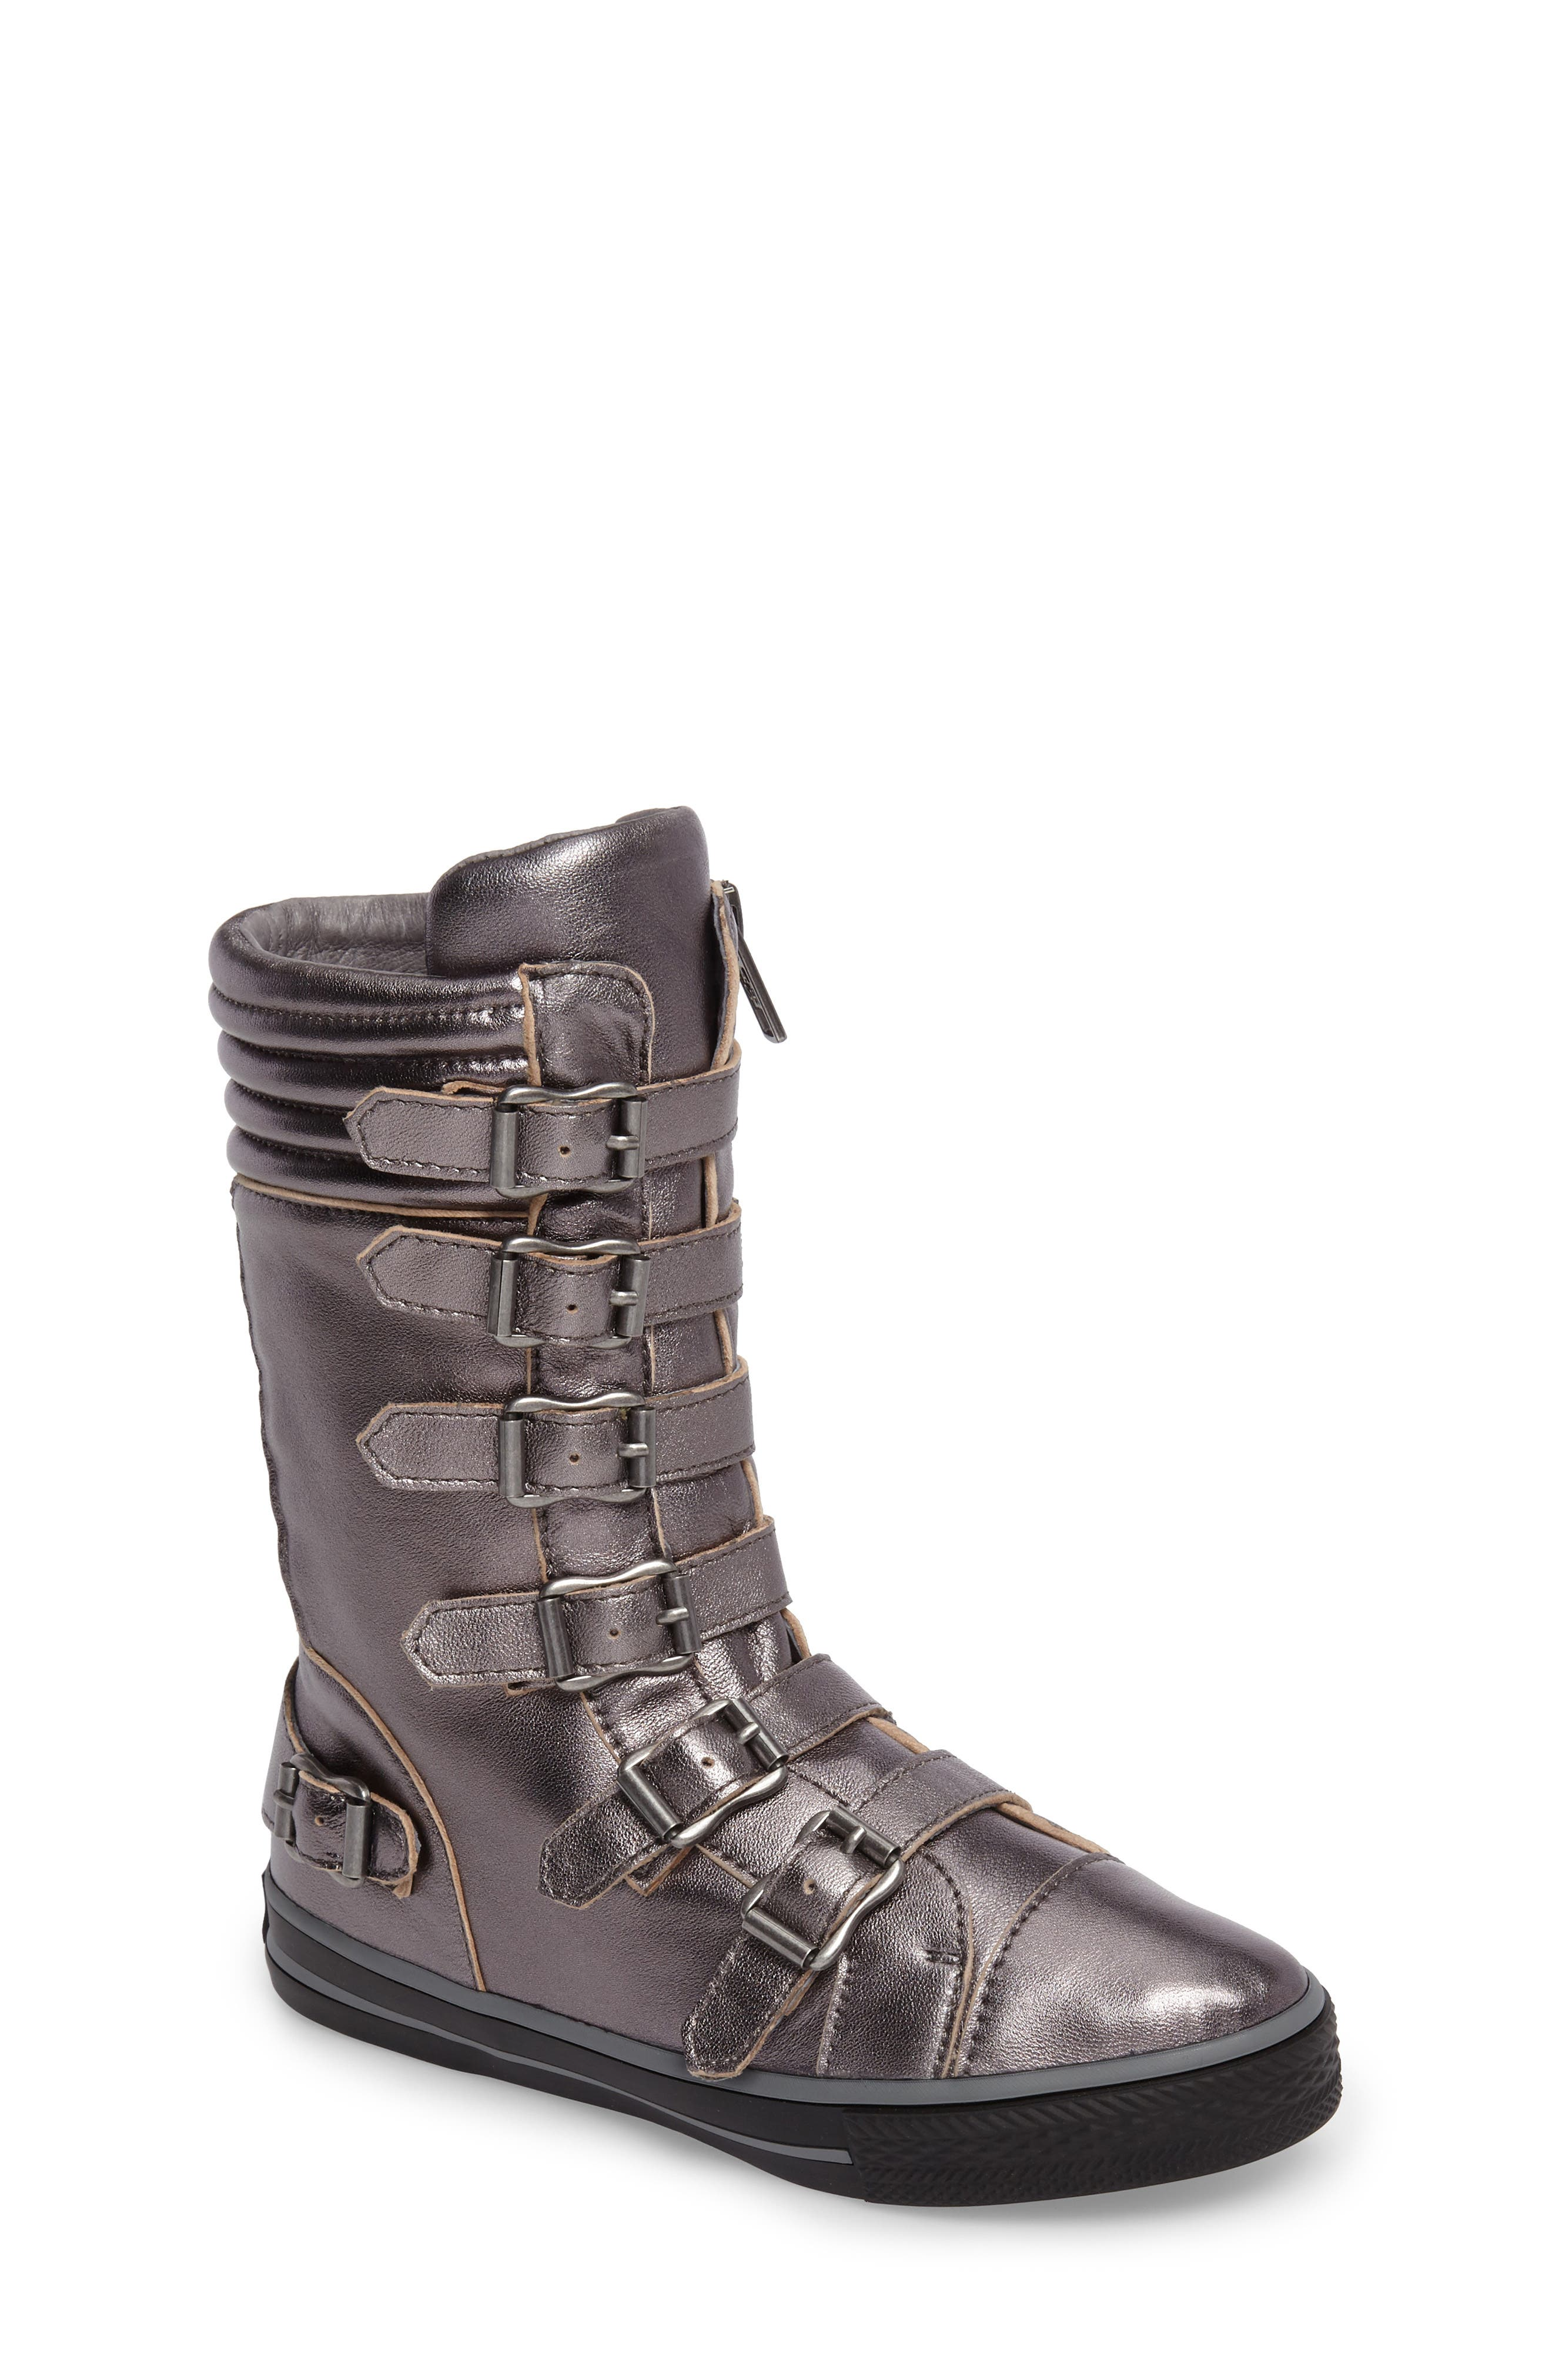 Vava Natalie Tall Sneaker Boot,                         Main,                         color, 040